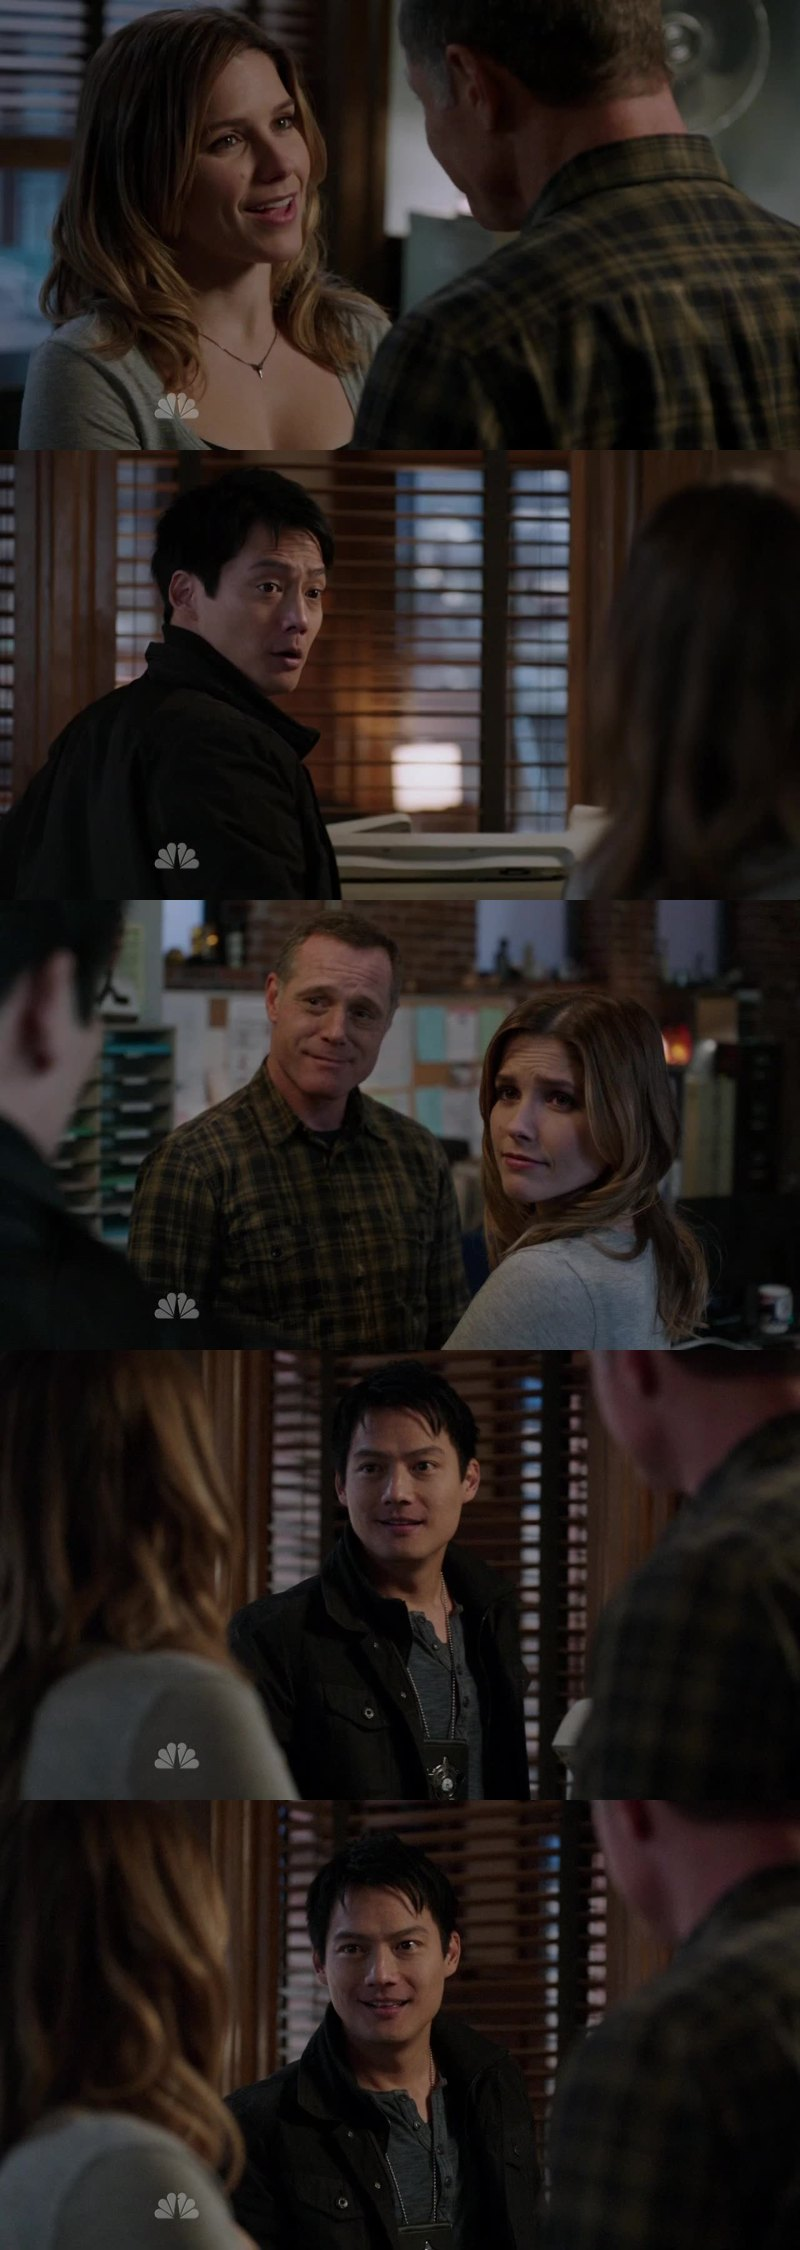 This scene was very awkward! Ahahah